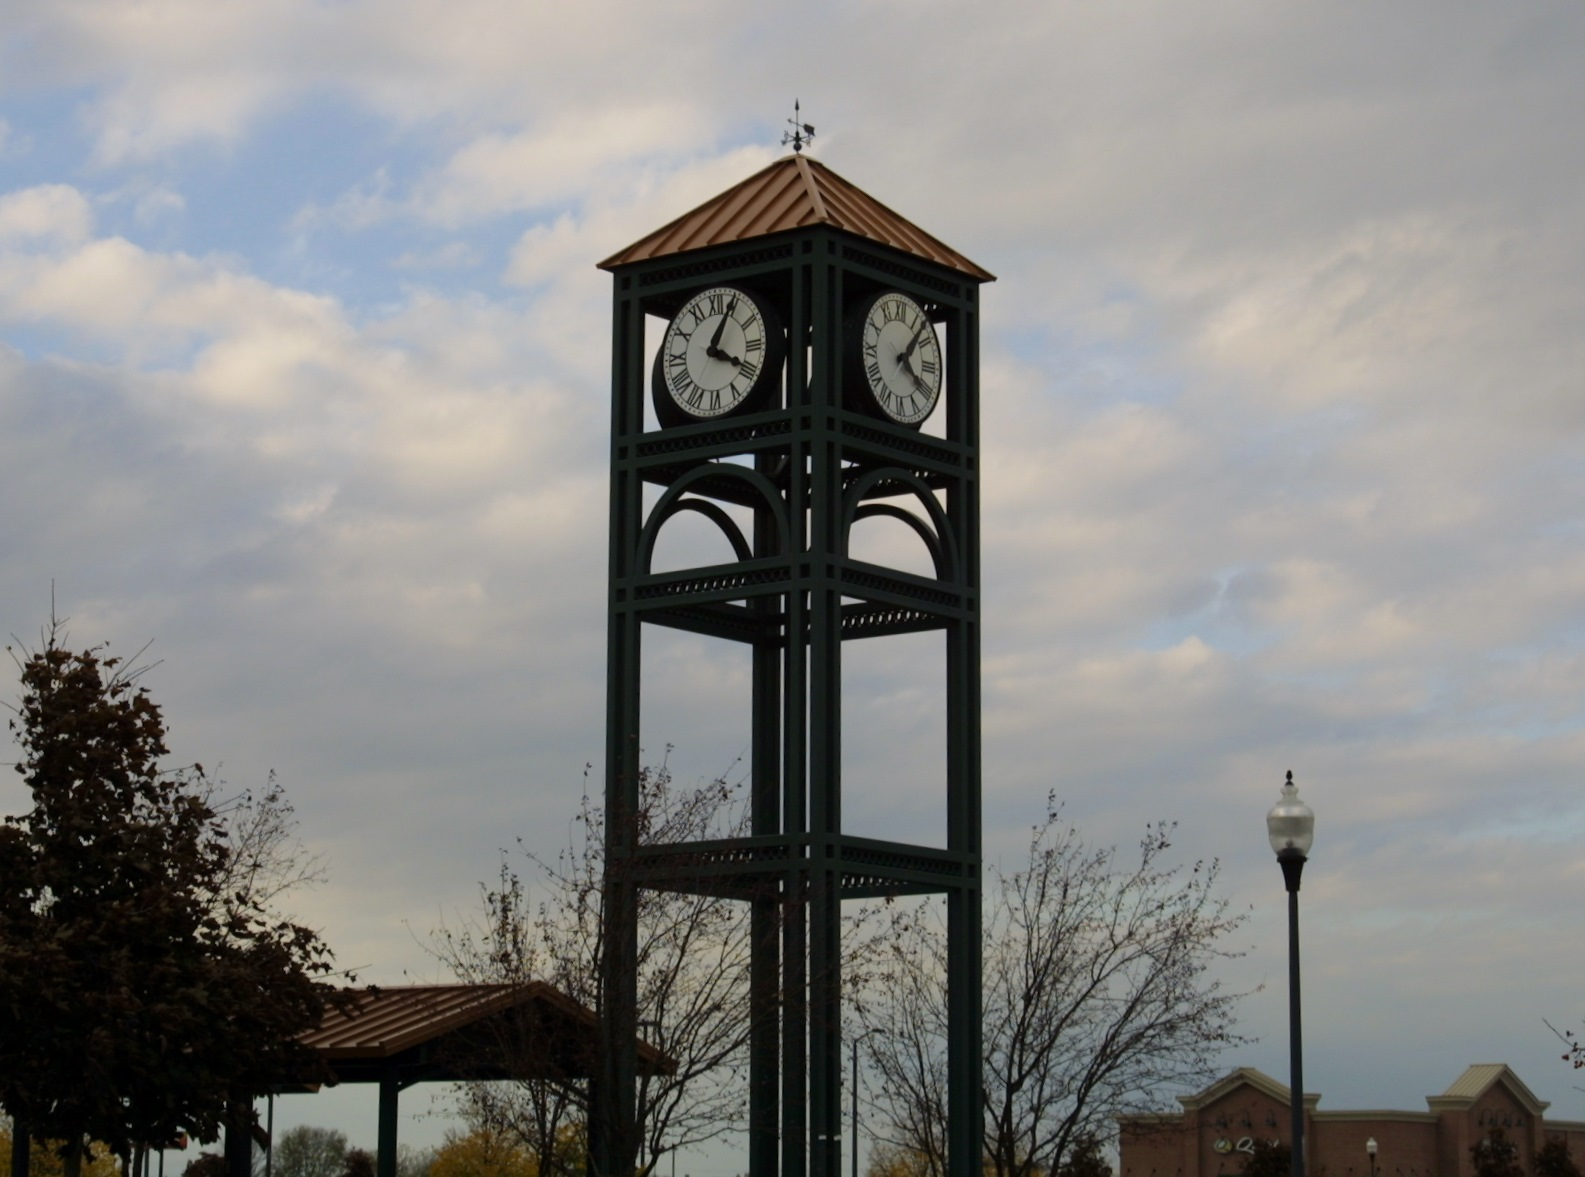 VillageParkClockTower.JPG